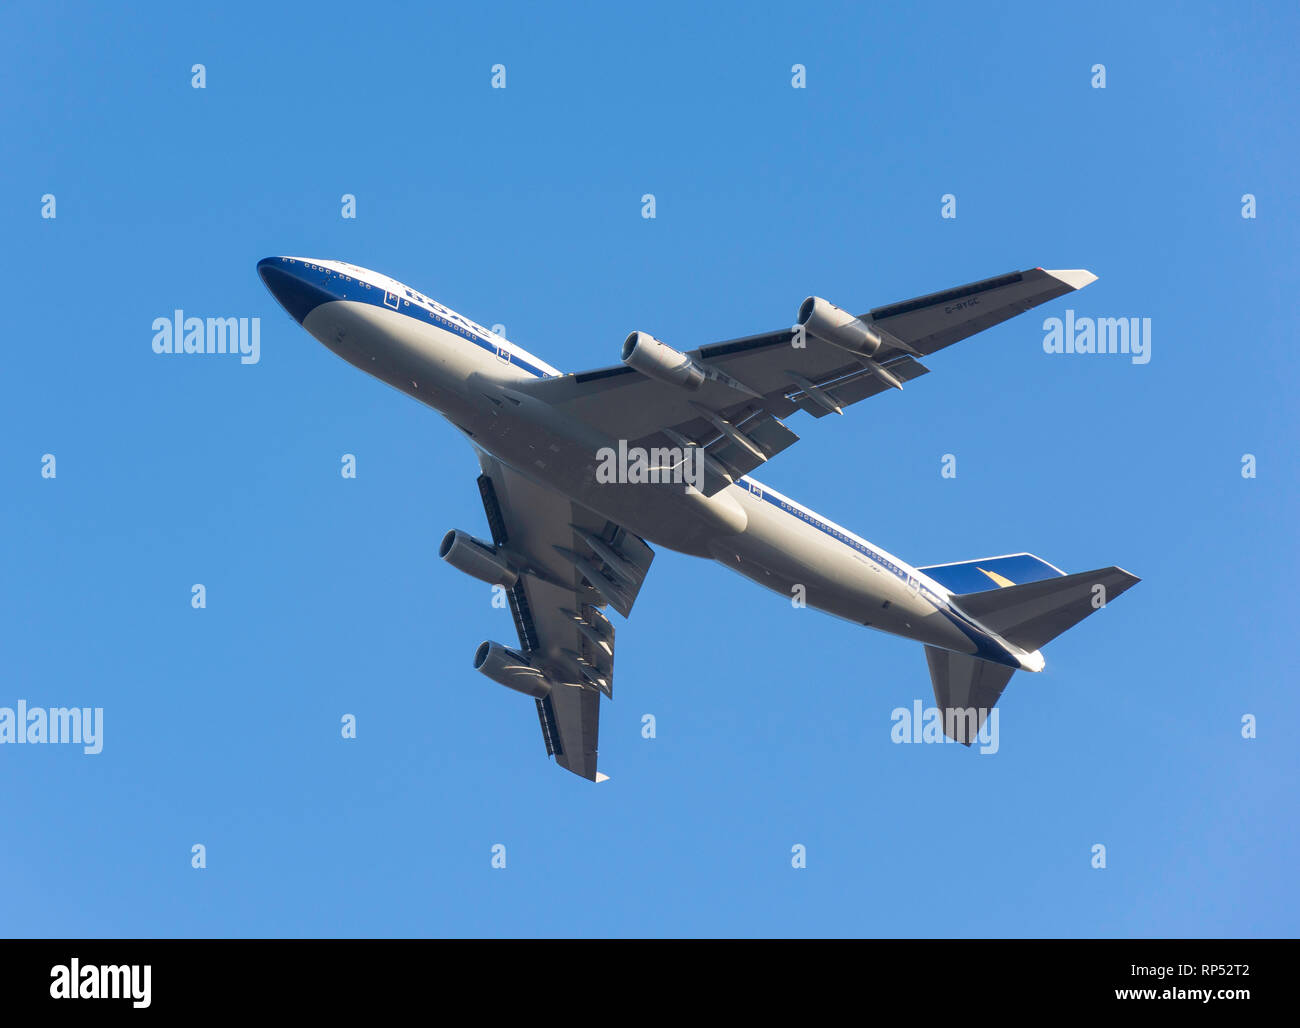 British Airways Boeing 747 aircraft (in old BOAC livery)taking off from Heathrow Airport, Greater London, England, United Kingdom - Stock Image